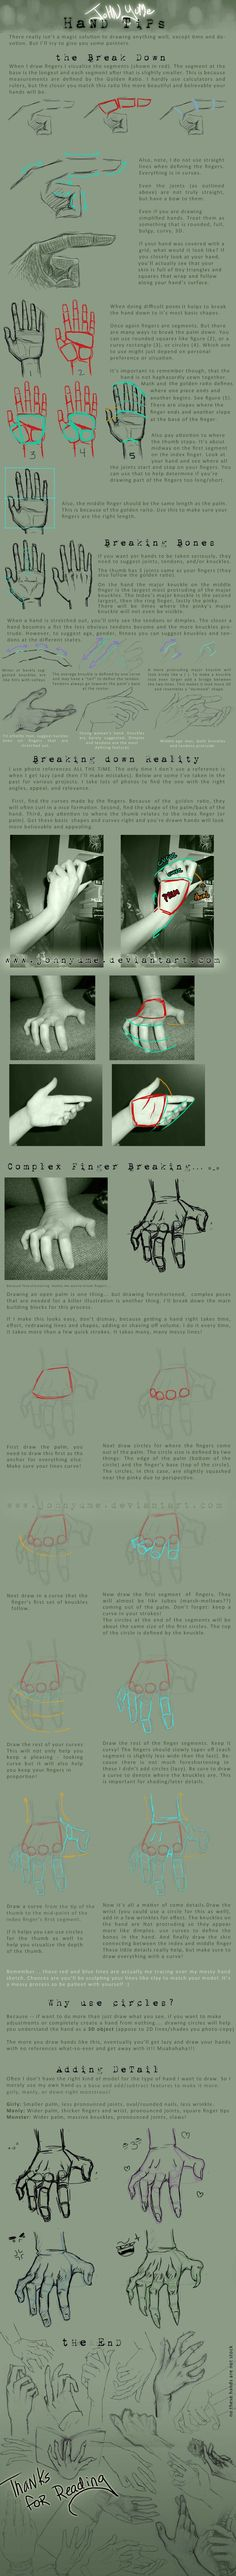 oh wow this is GREAT! I have such a hard time with hands, never thought about it in this way before :O